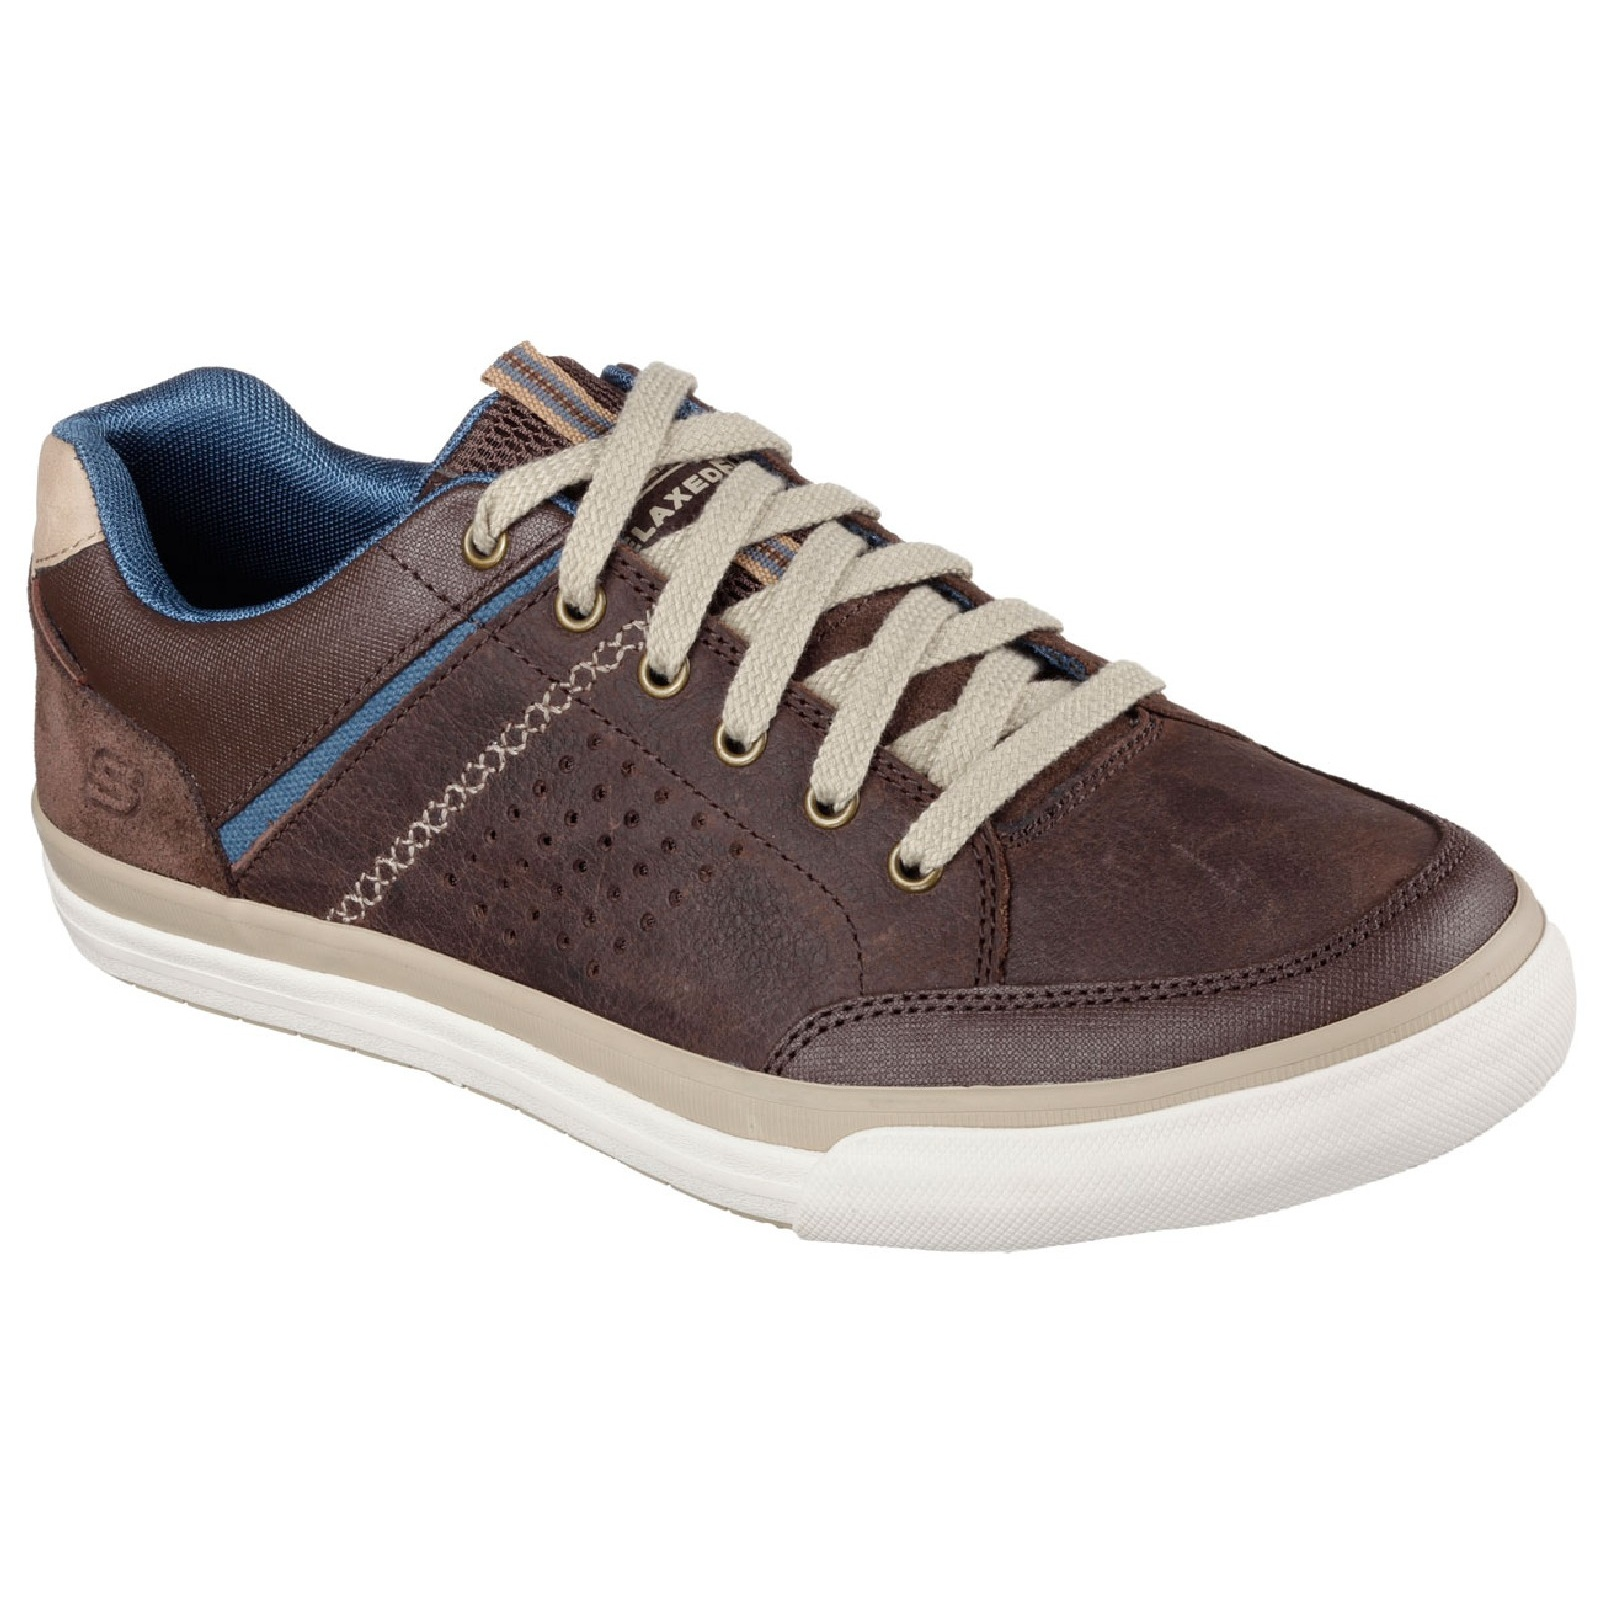 skechers mens diamondback rendol relaxed fit casual shoes